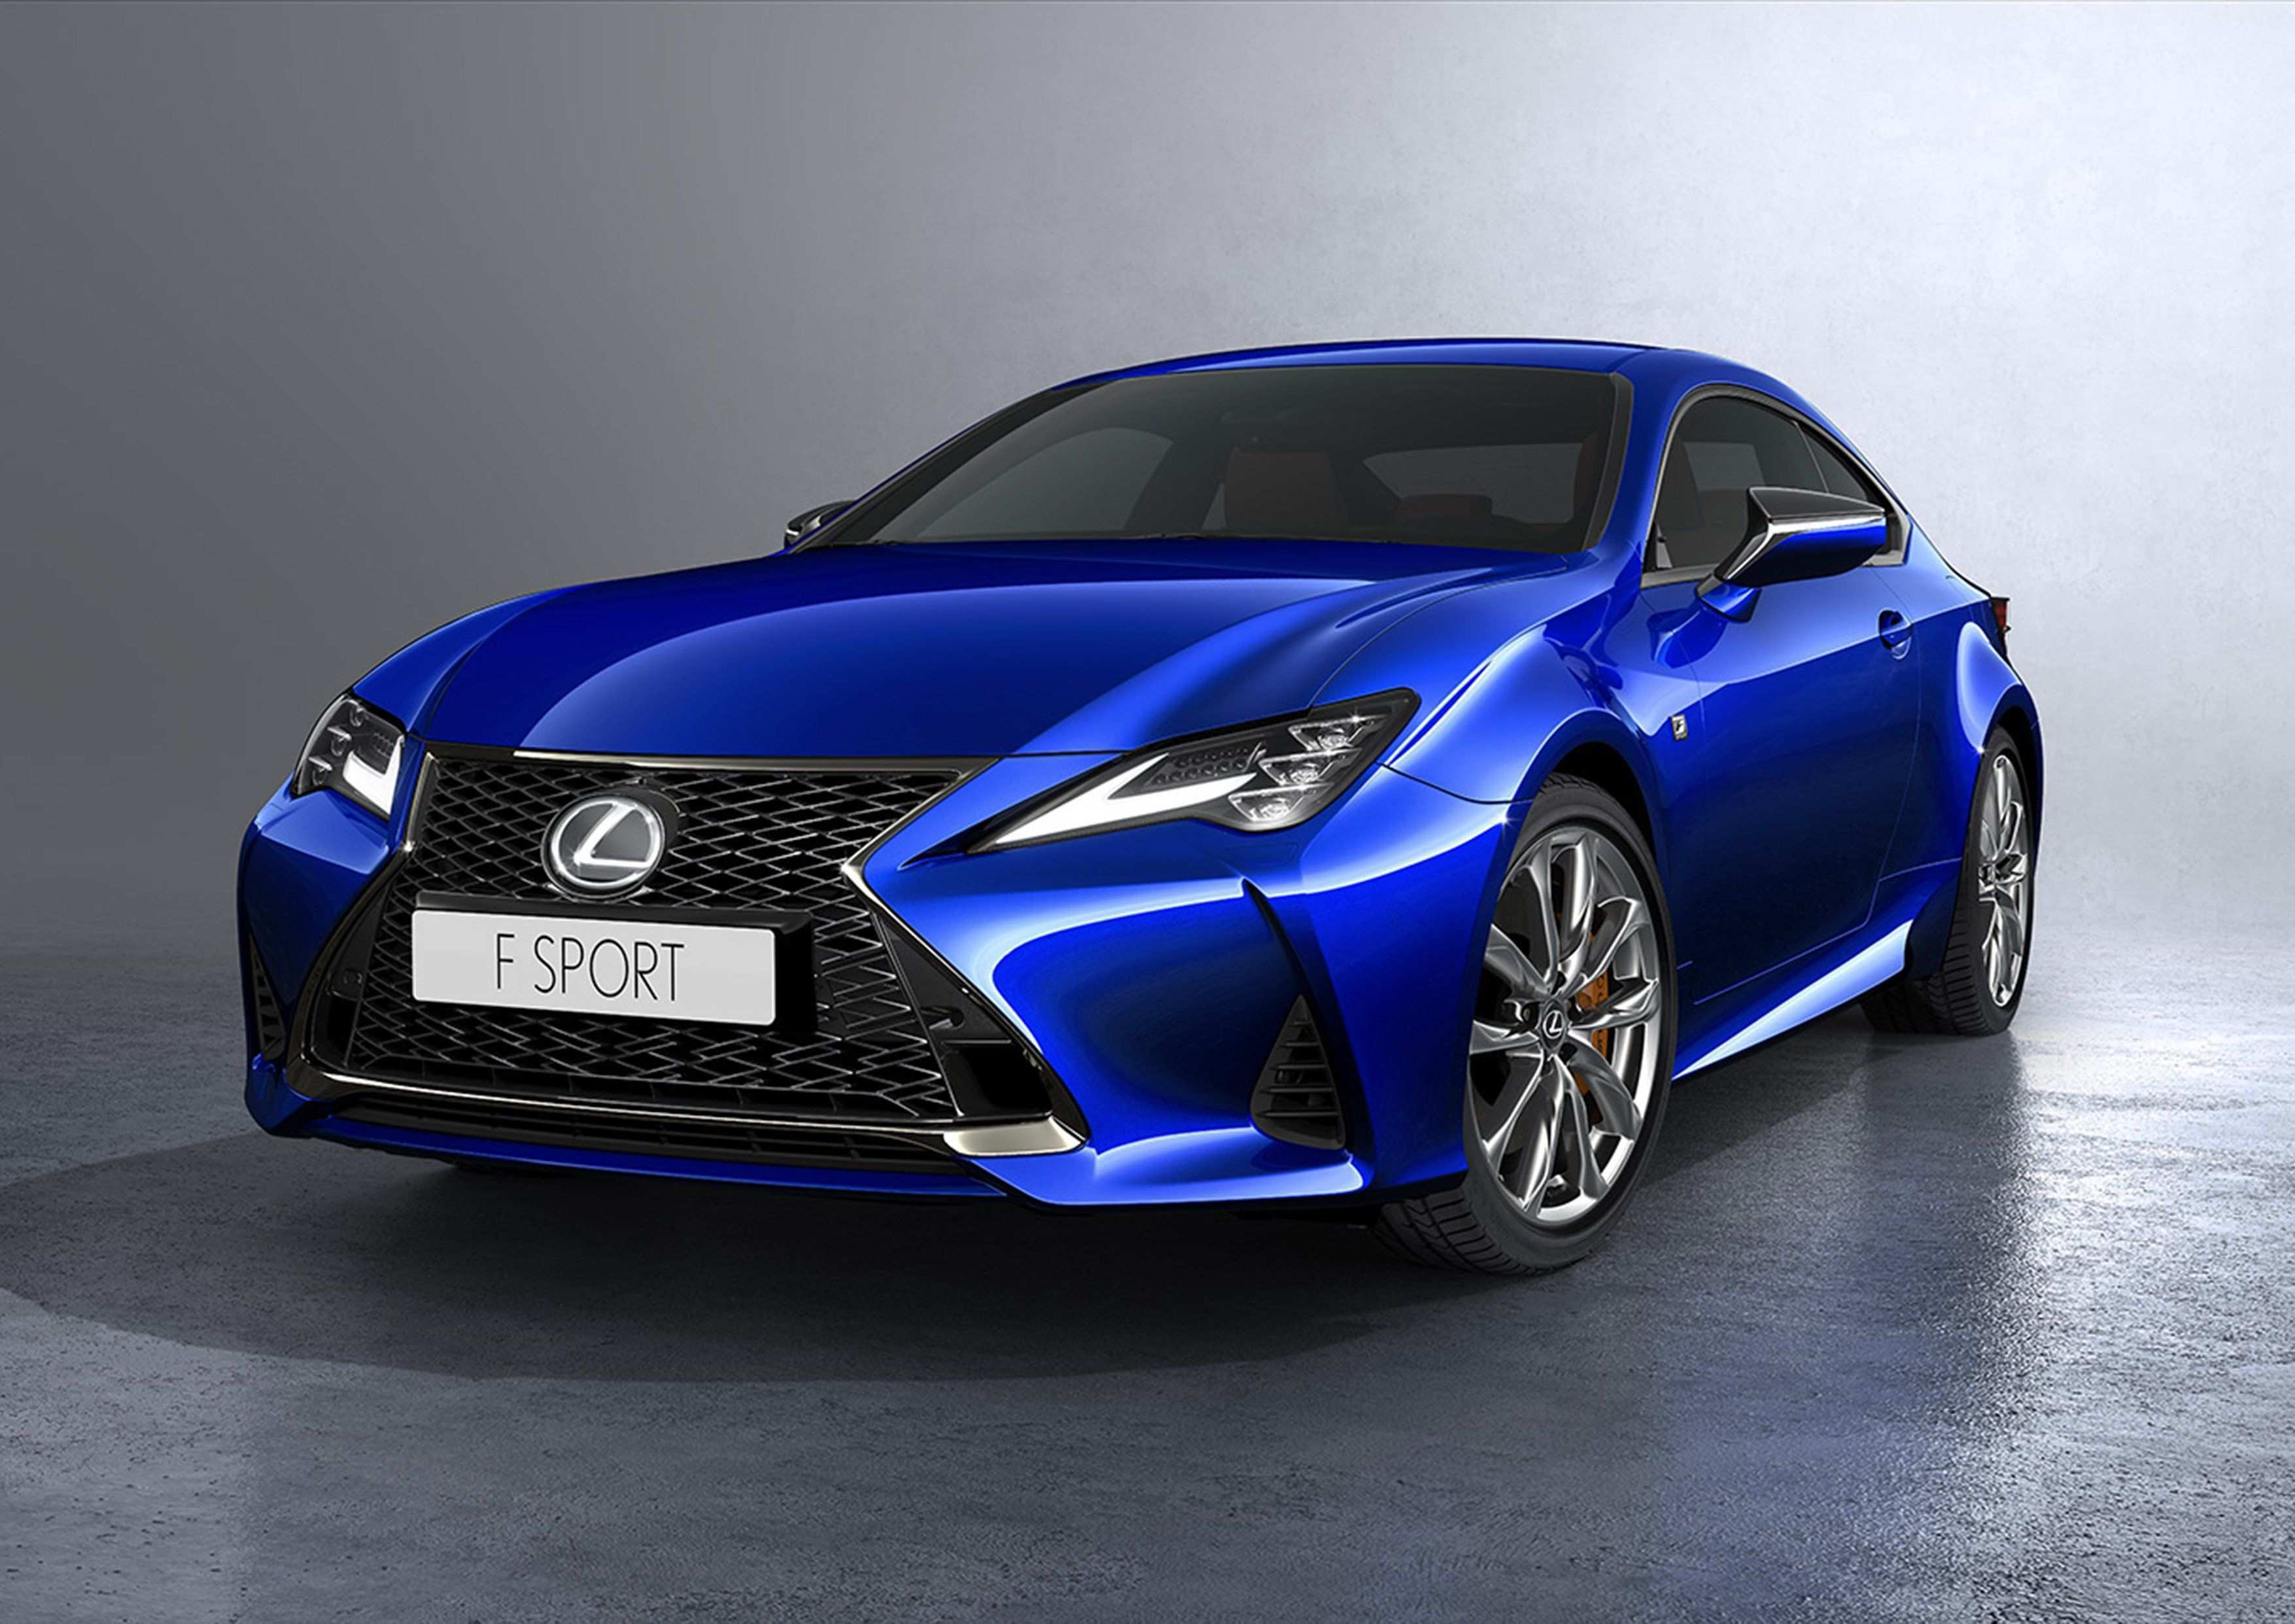 49 Concept of Lexus News 2020 Pricing by Lexus News 2020